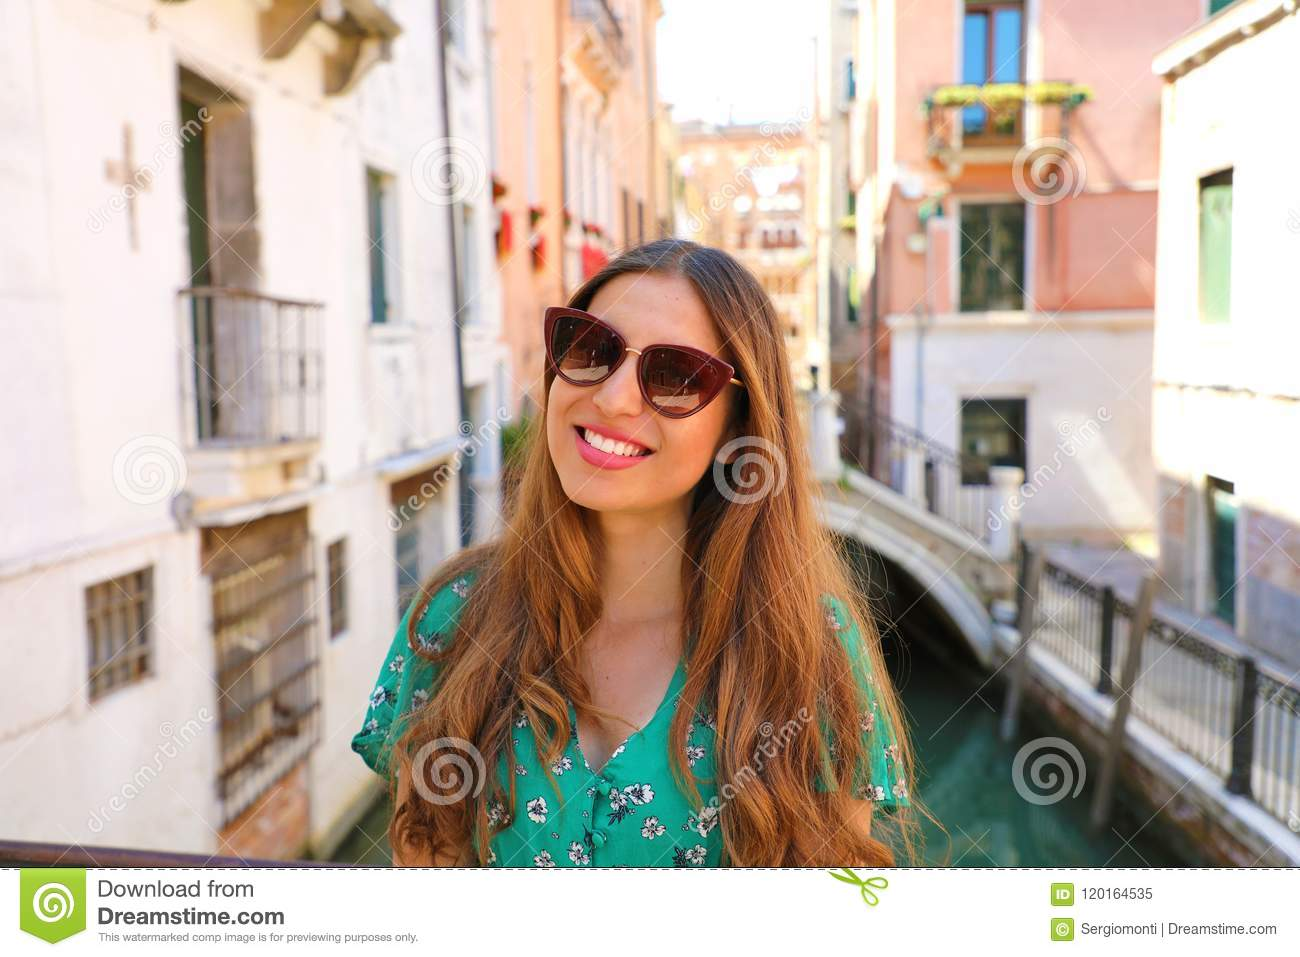 Smiling young woman with sunglasses and green dress in Venice. Happy beautiful girl standing on Venice bridge on canal, Italy